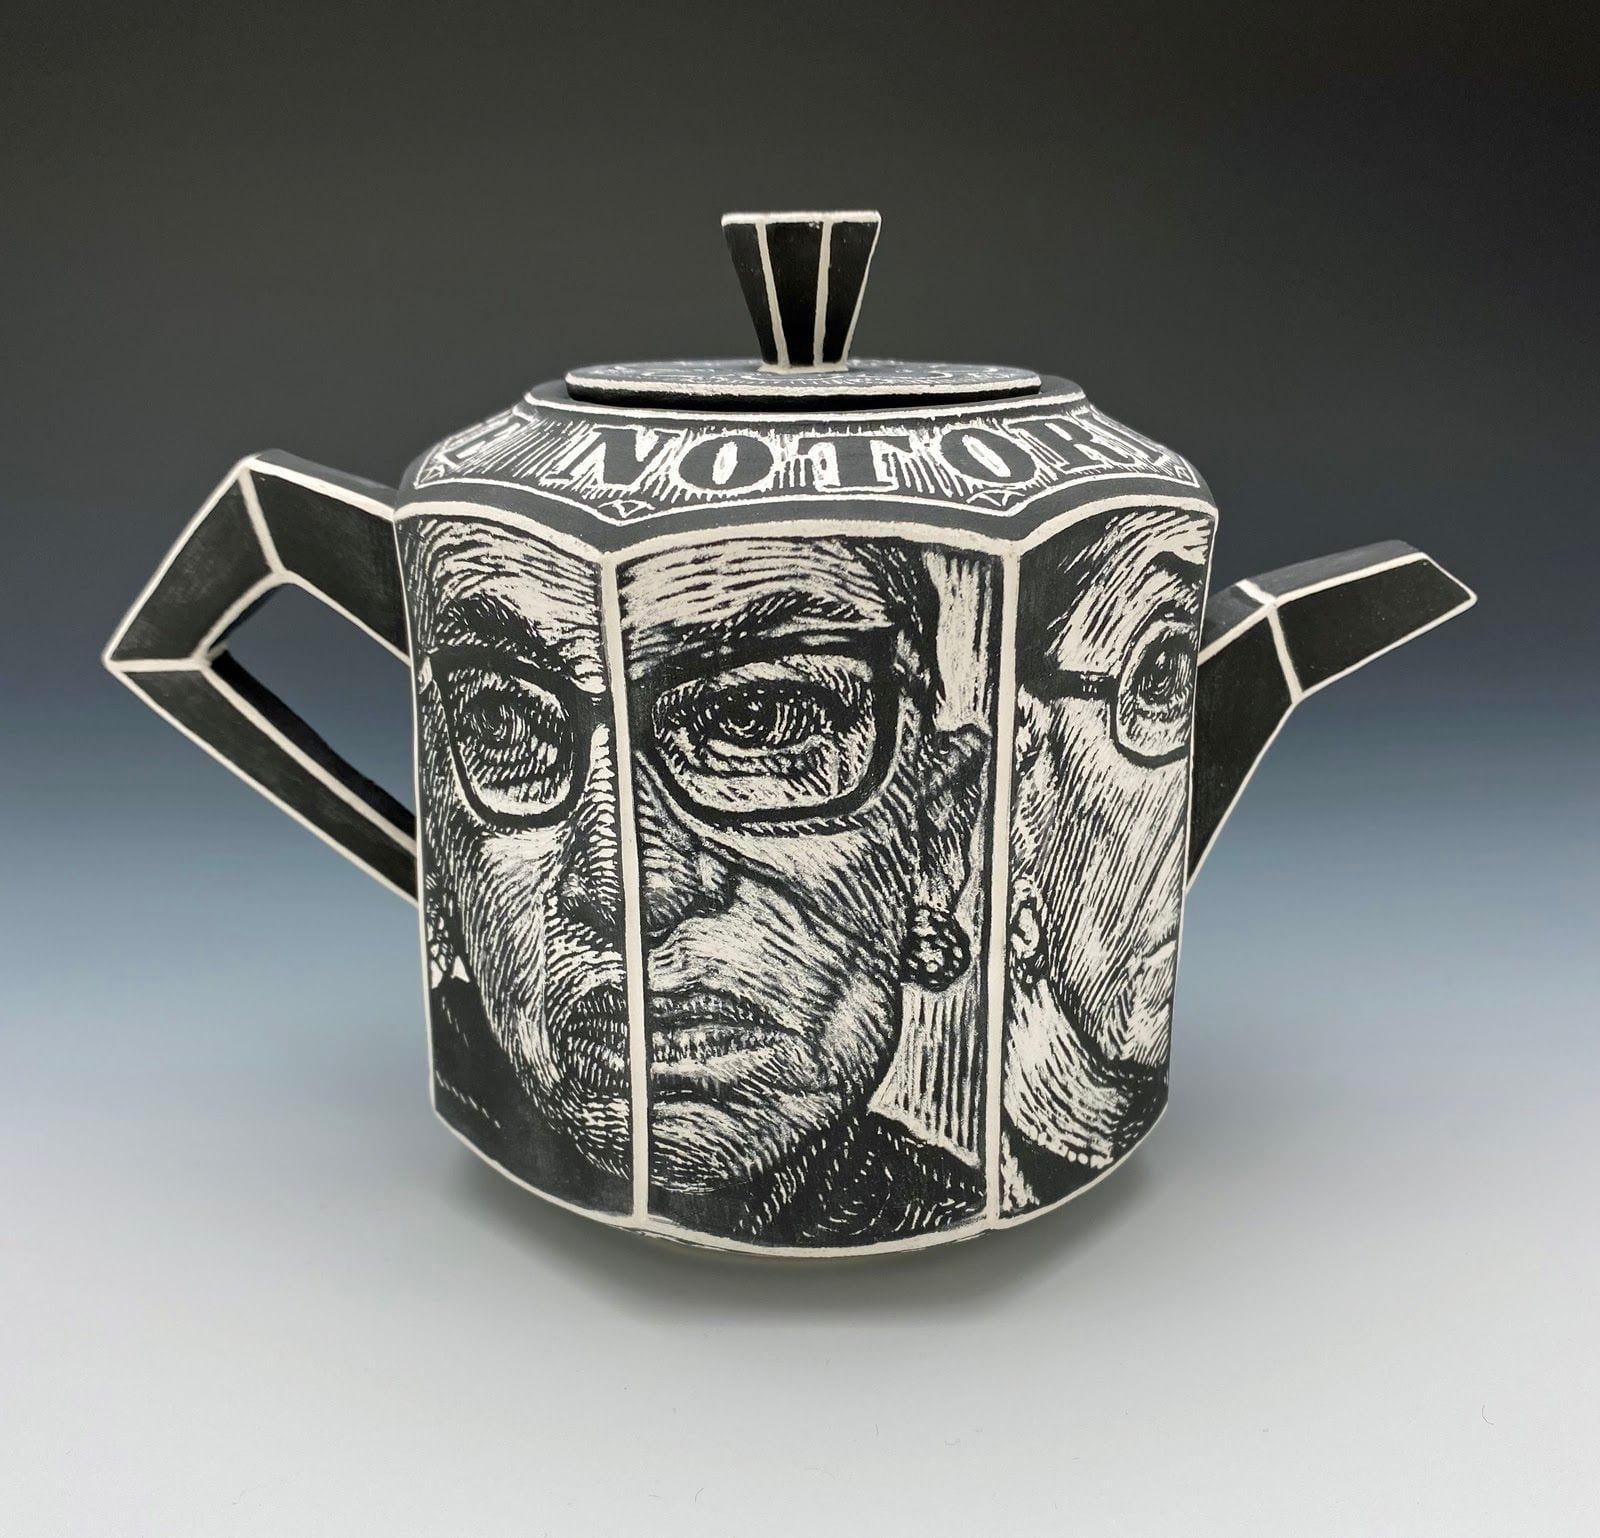 "Chris Theiss - One Of A Kind - 2020 - Cast Porcelain, Glaze, Sgraffito - 5"" x 6.5"" x 3.75"""